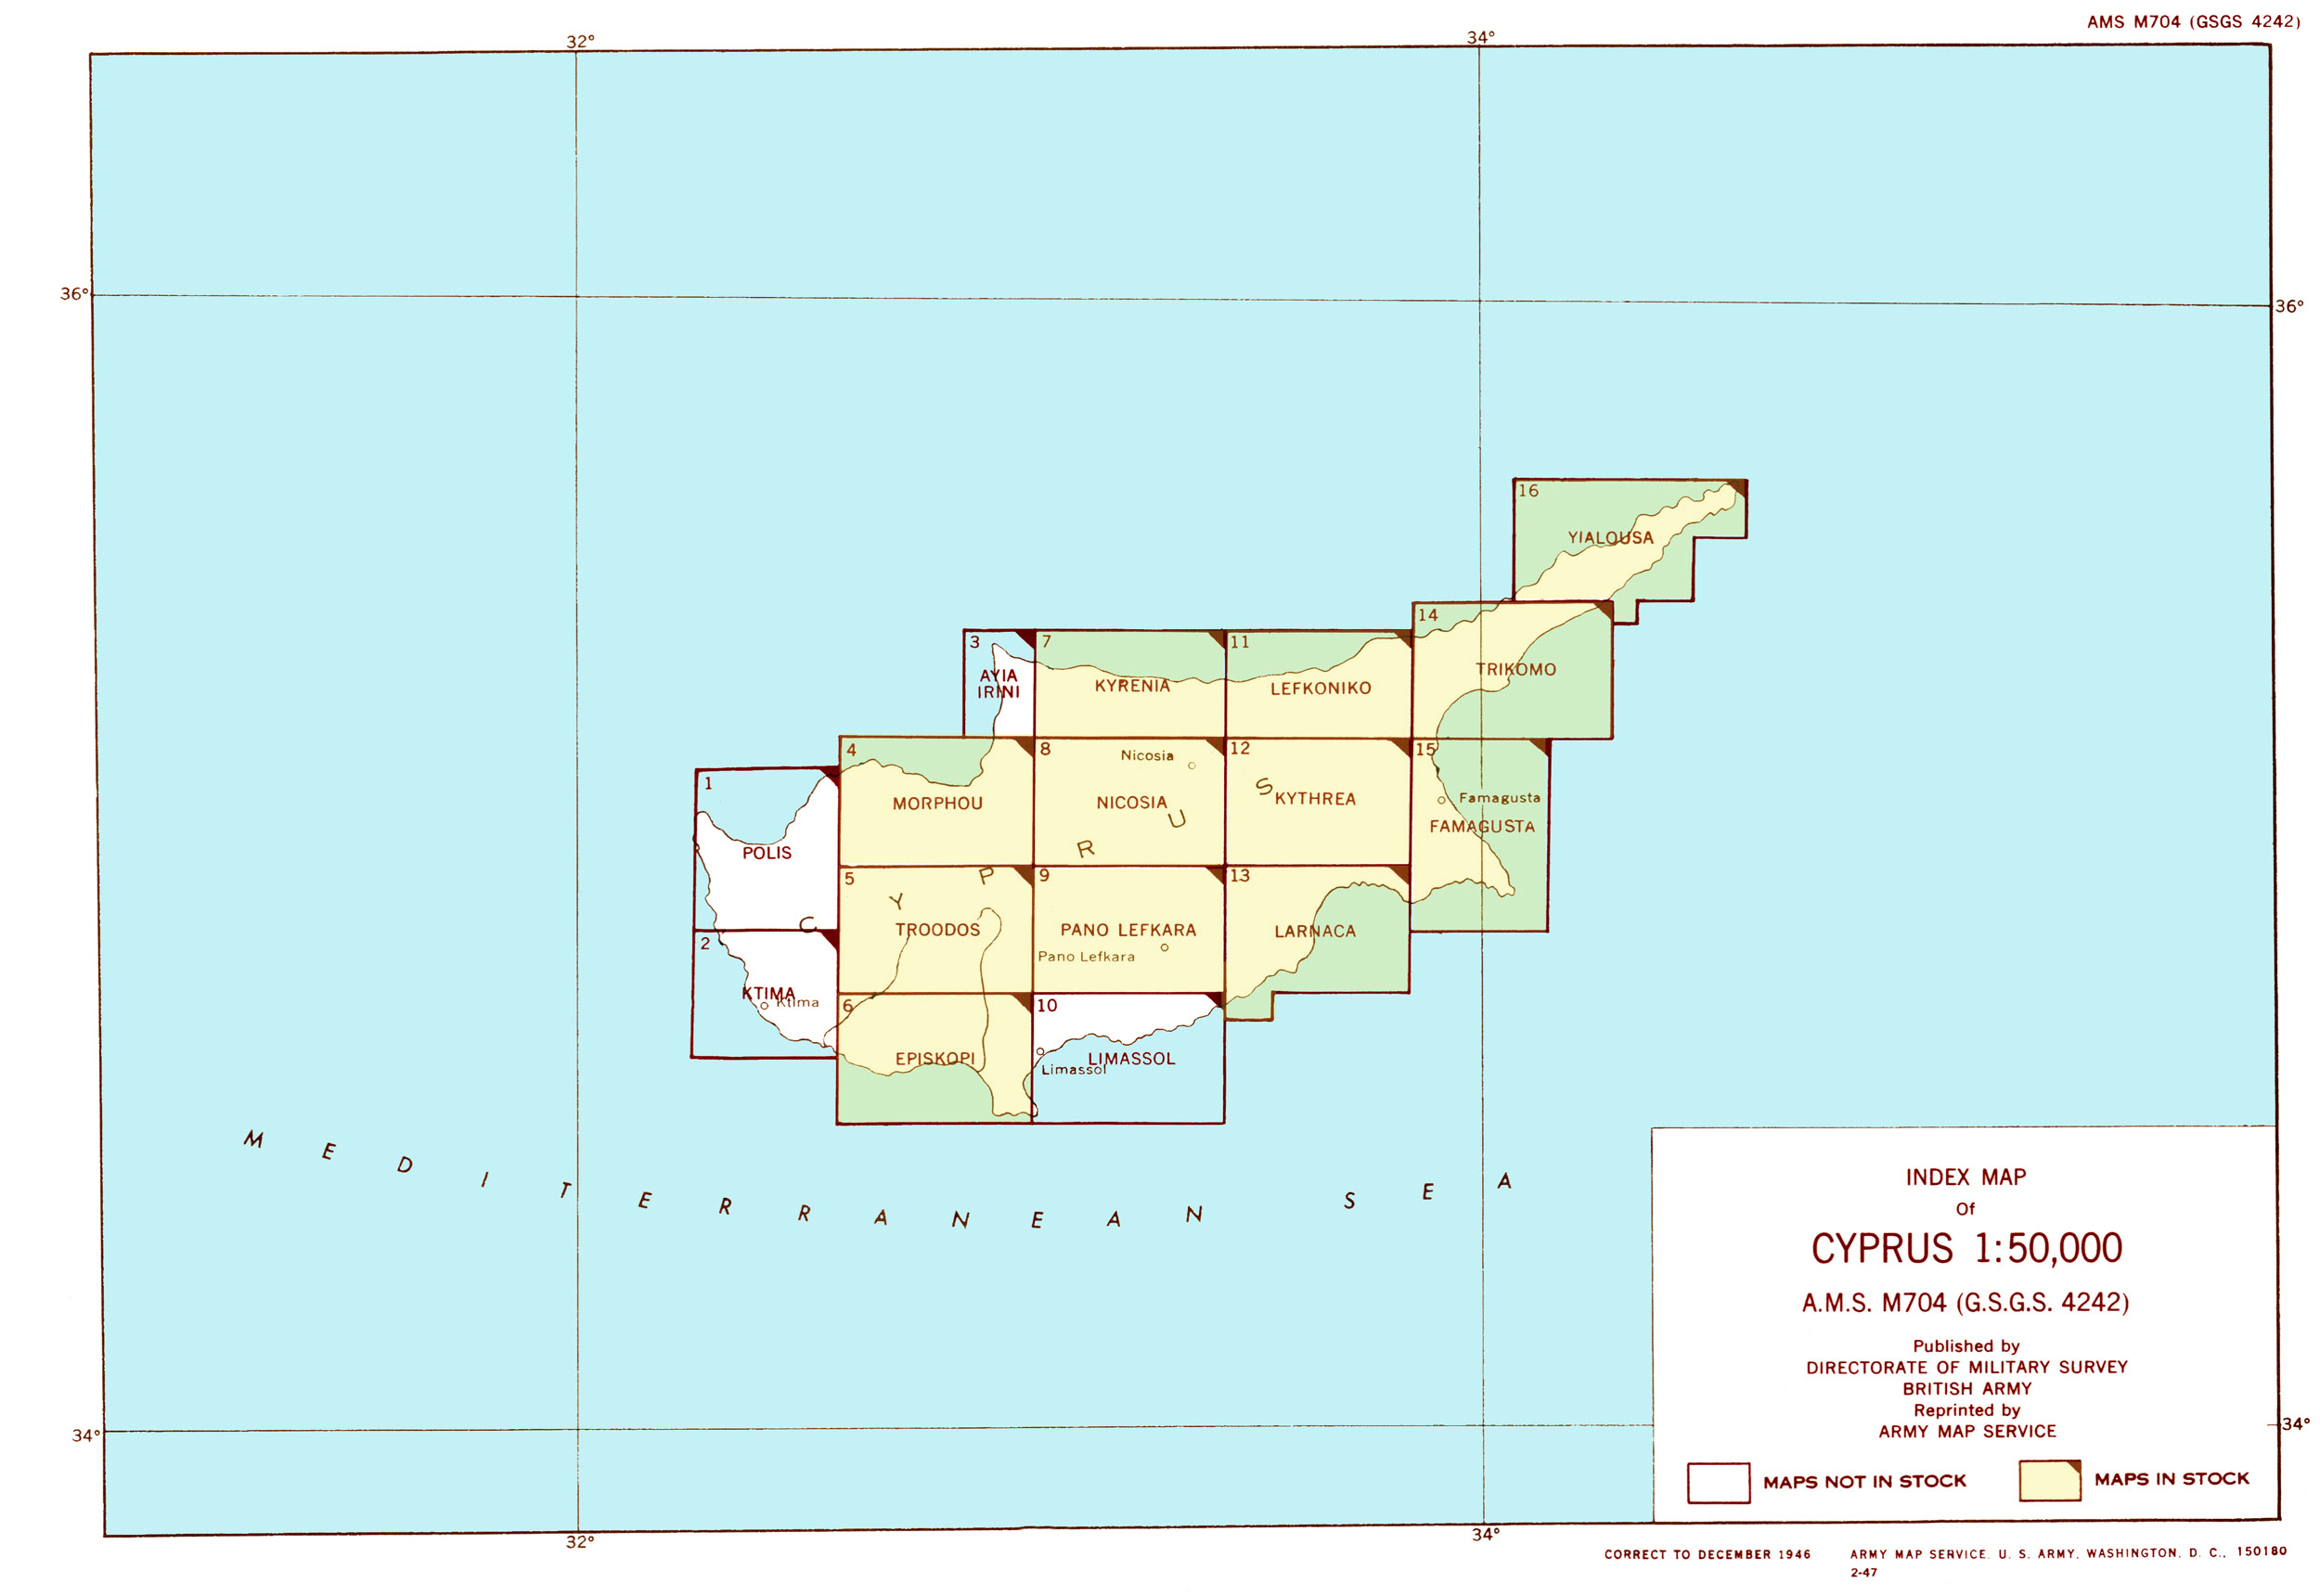 Cyprus AMS Topographic Maps PerryCasta eda Map Collection UT – Map Service